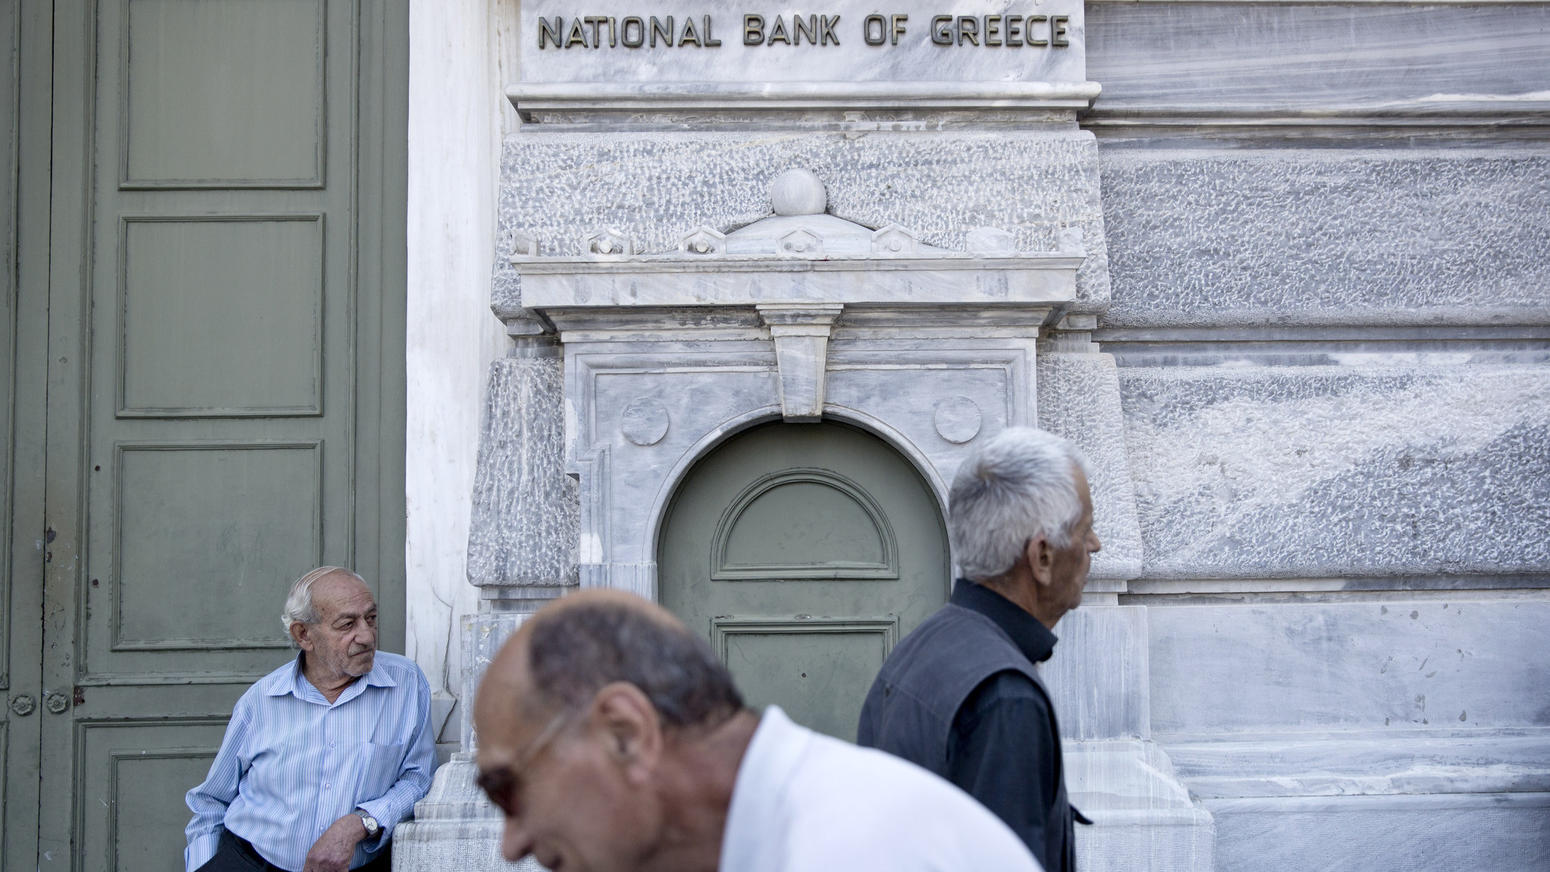 Debt crisis in Greece